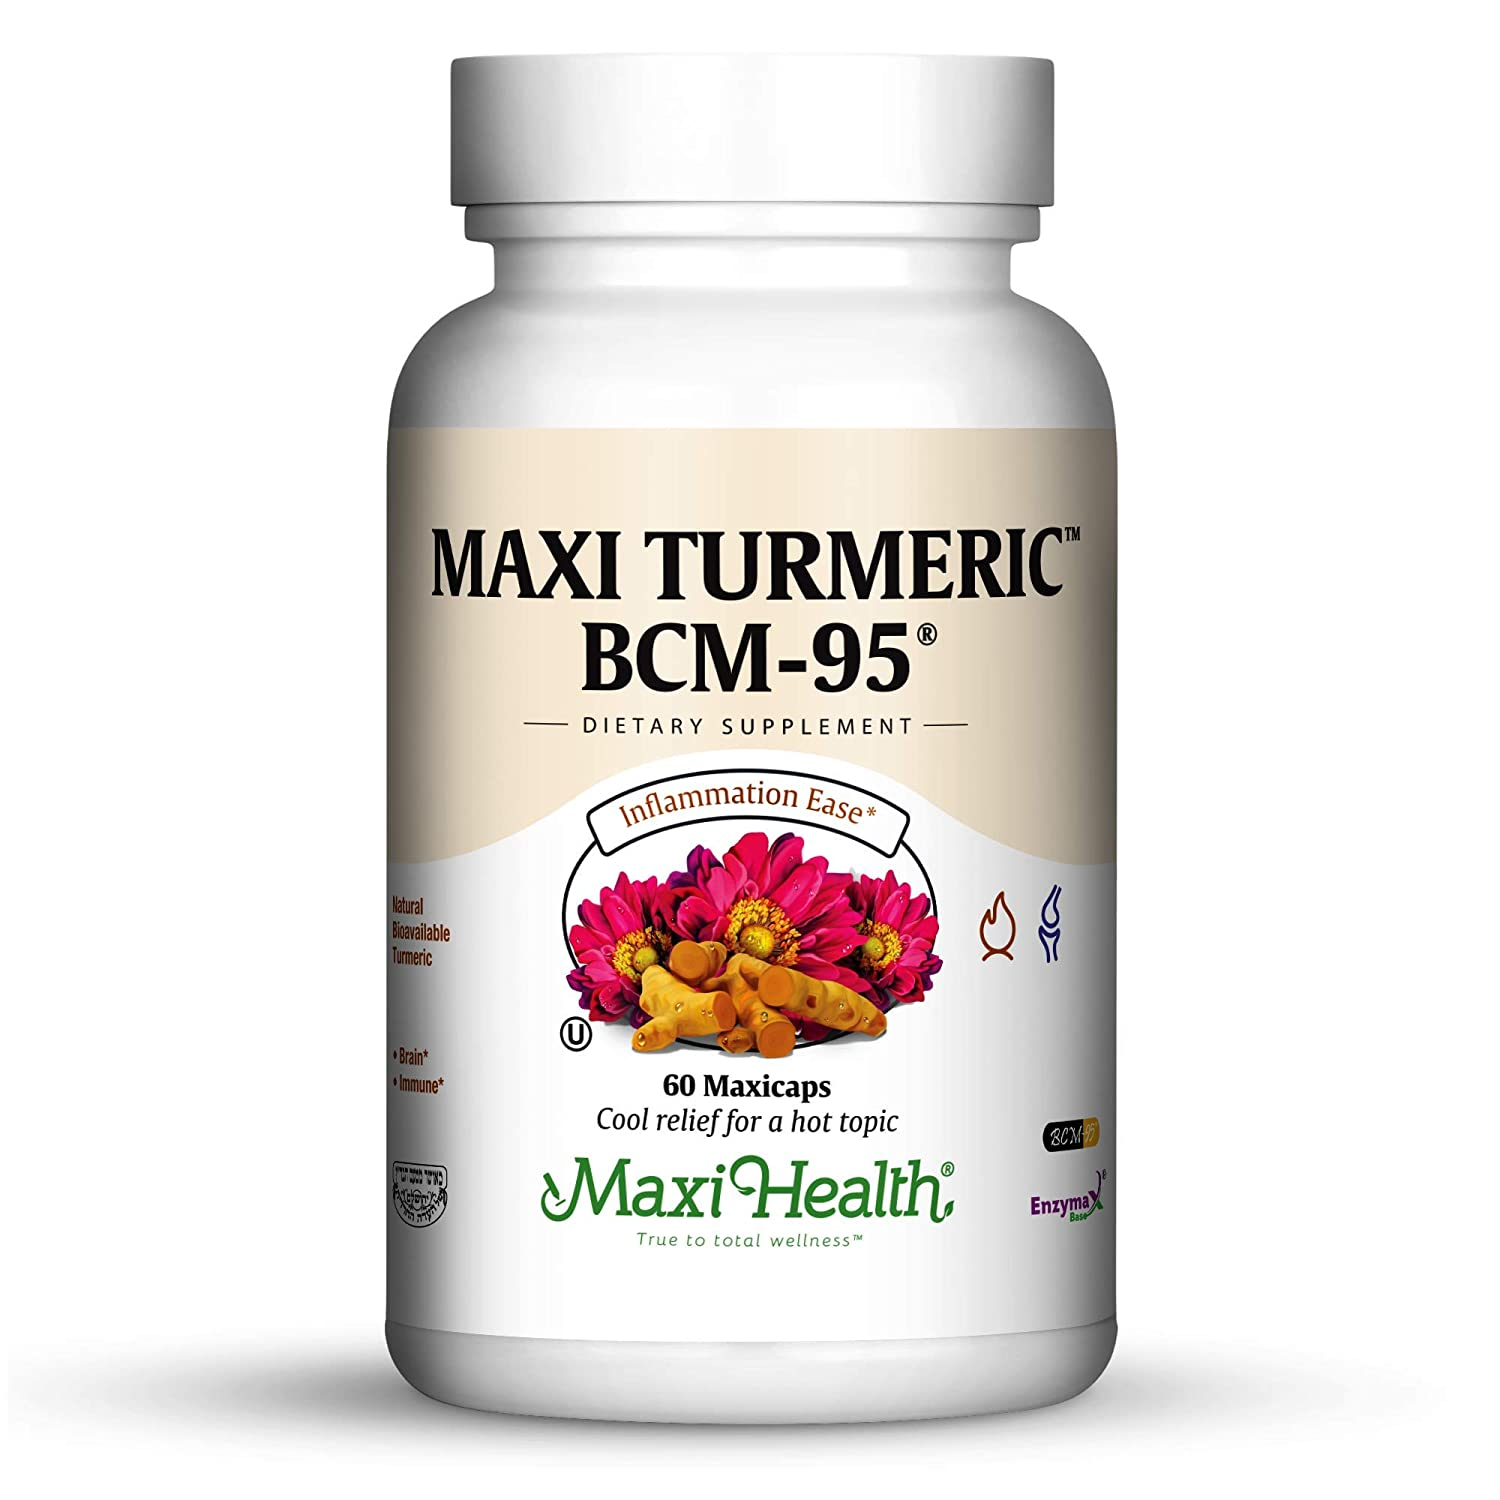 Turmeric Bcm-95 Curcumin – Potent Anti-Inflammatory, Pain Relief, Immune Joint Support, 60 Maxicaps – Gluten Free, Soy Free Kosher